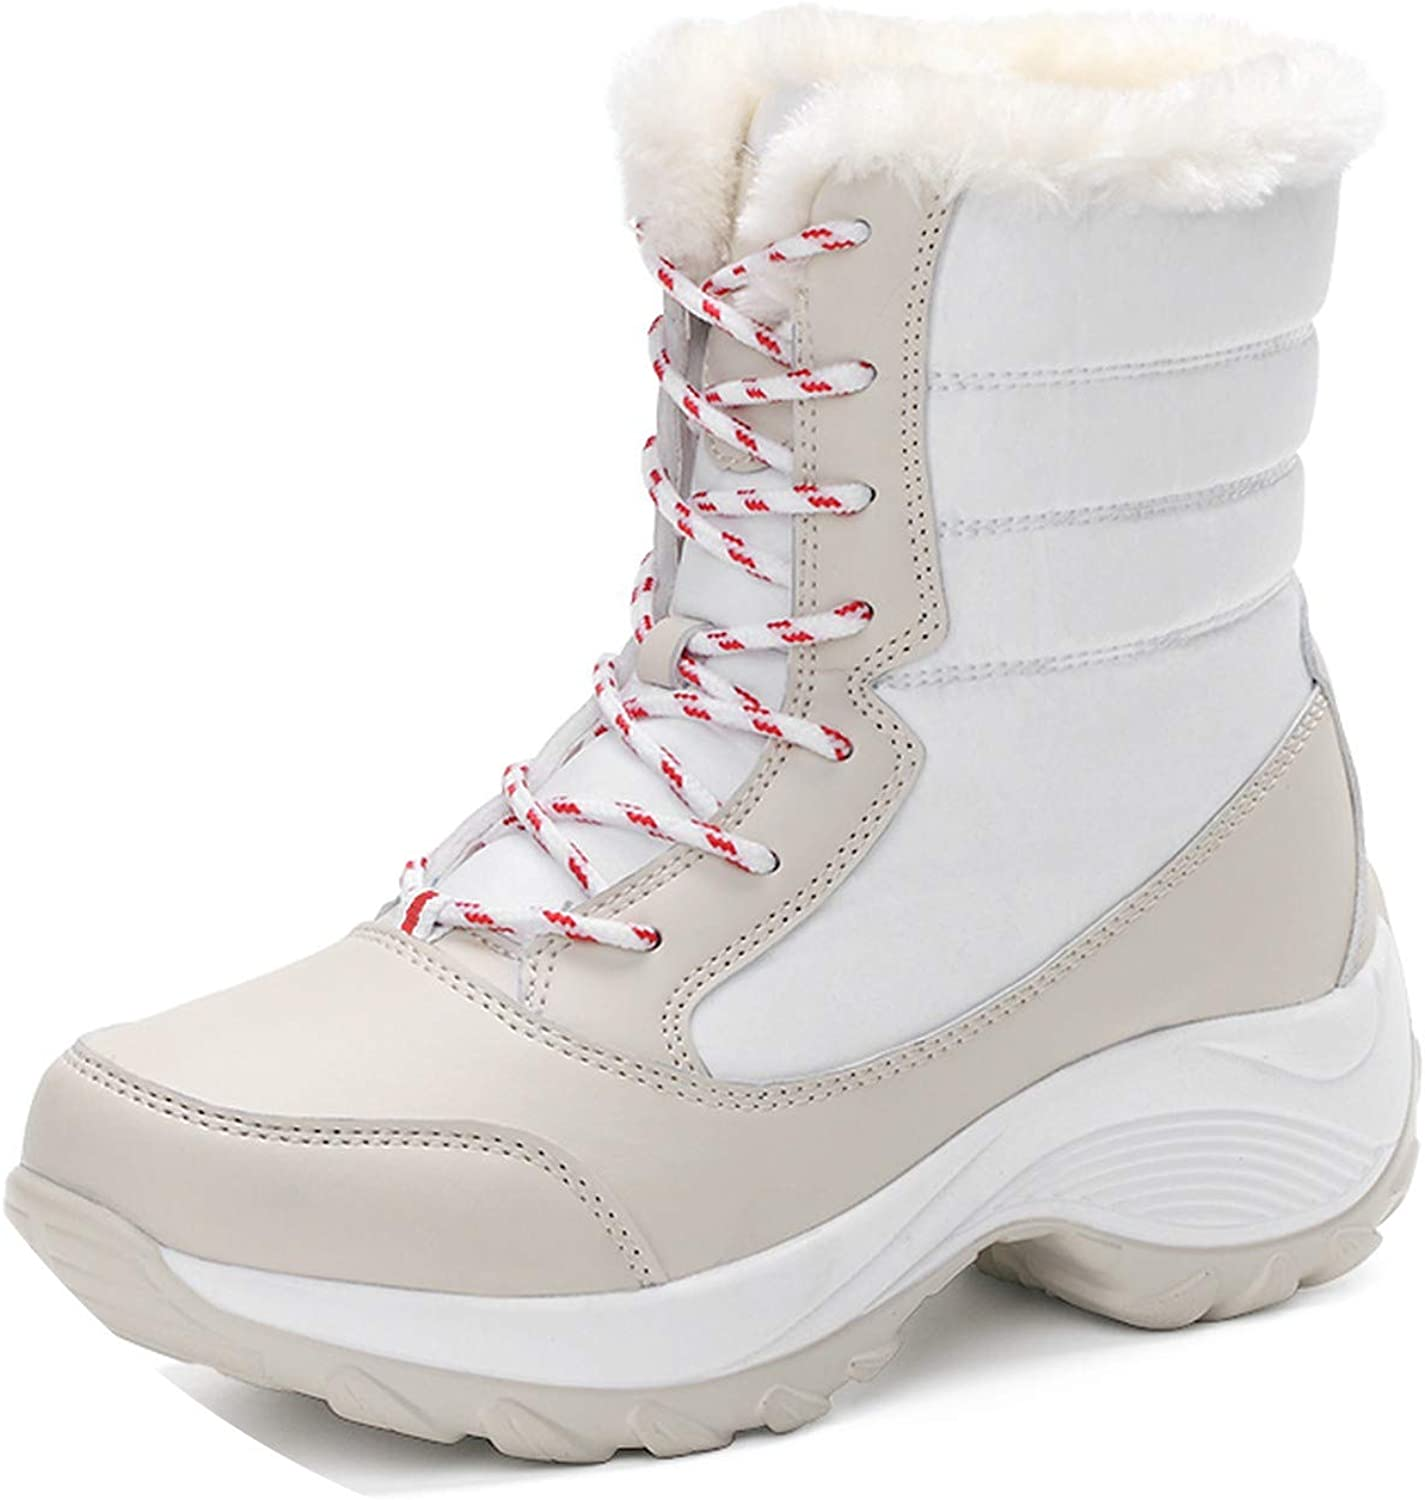 The memory is really bad Women Boots Mid-Calf Platform Ankle Boots Women high Warm Fur Plush rain Boots Hiking Boots